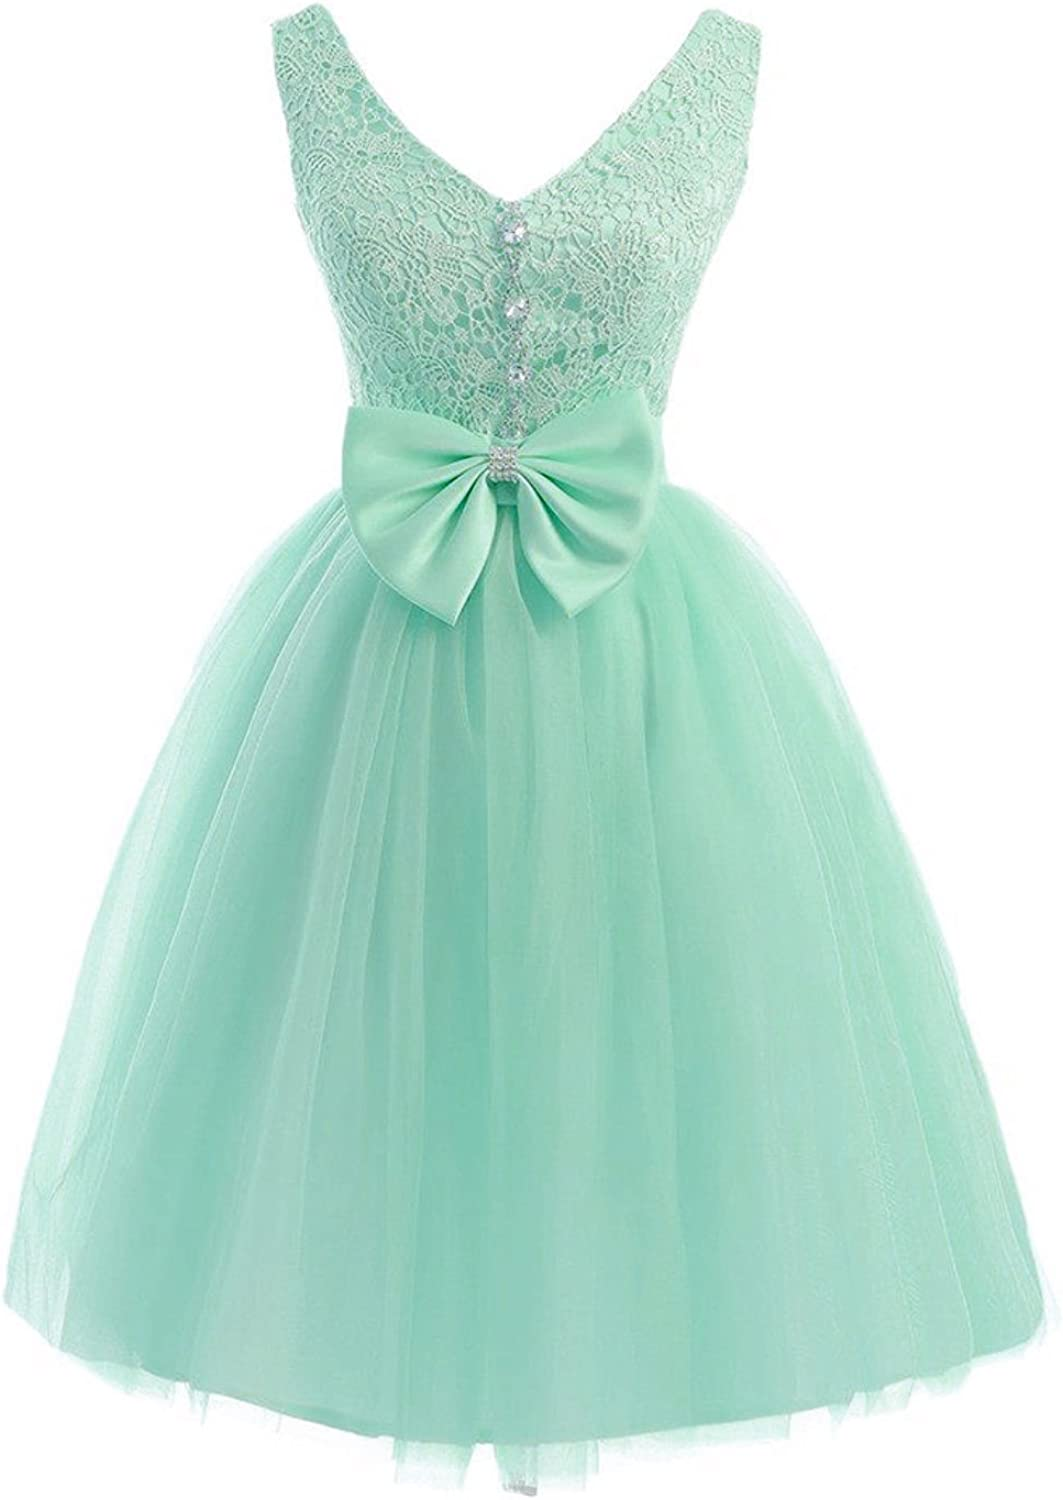 QY Bride Princess Tulle and Lace Prom Homecoming Dresses Short